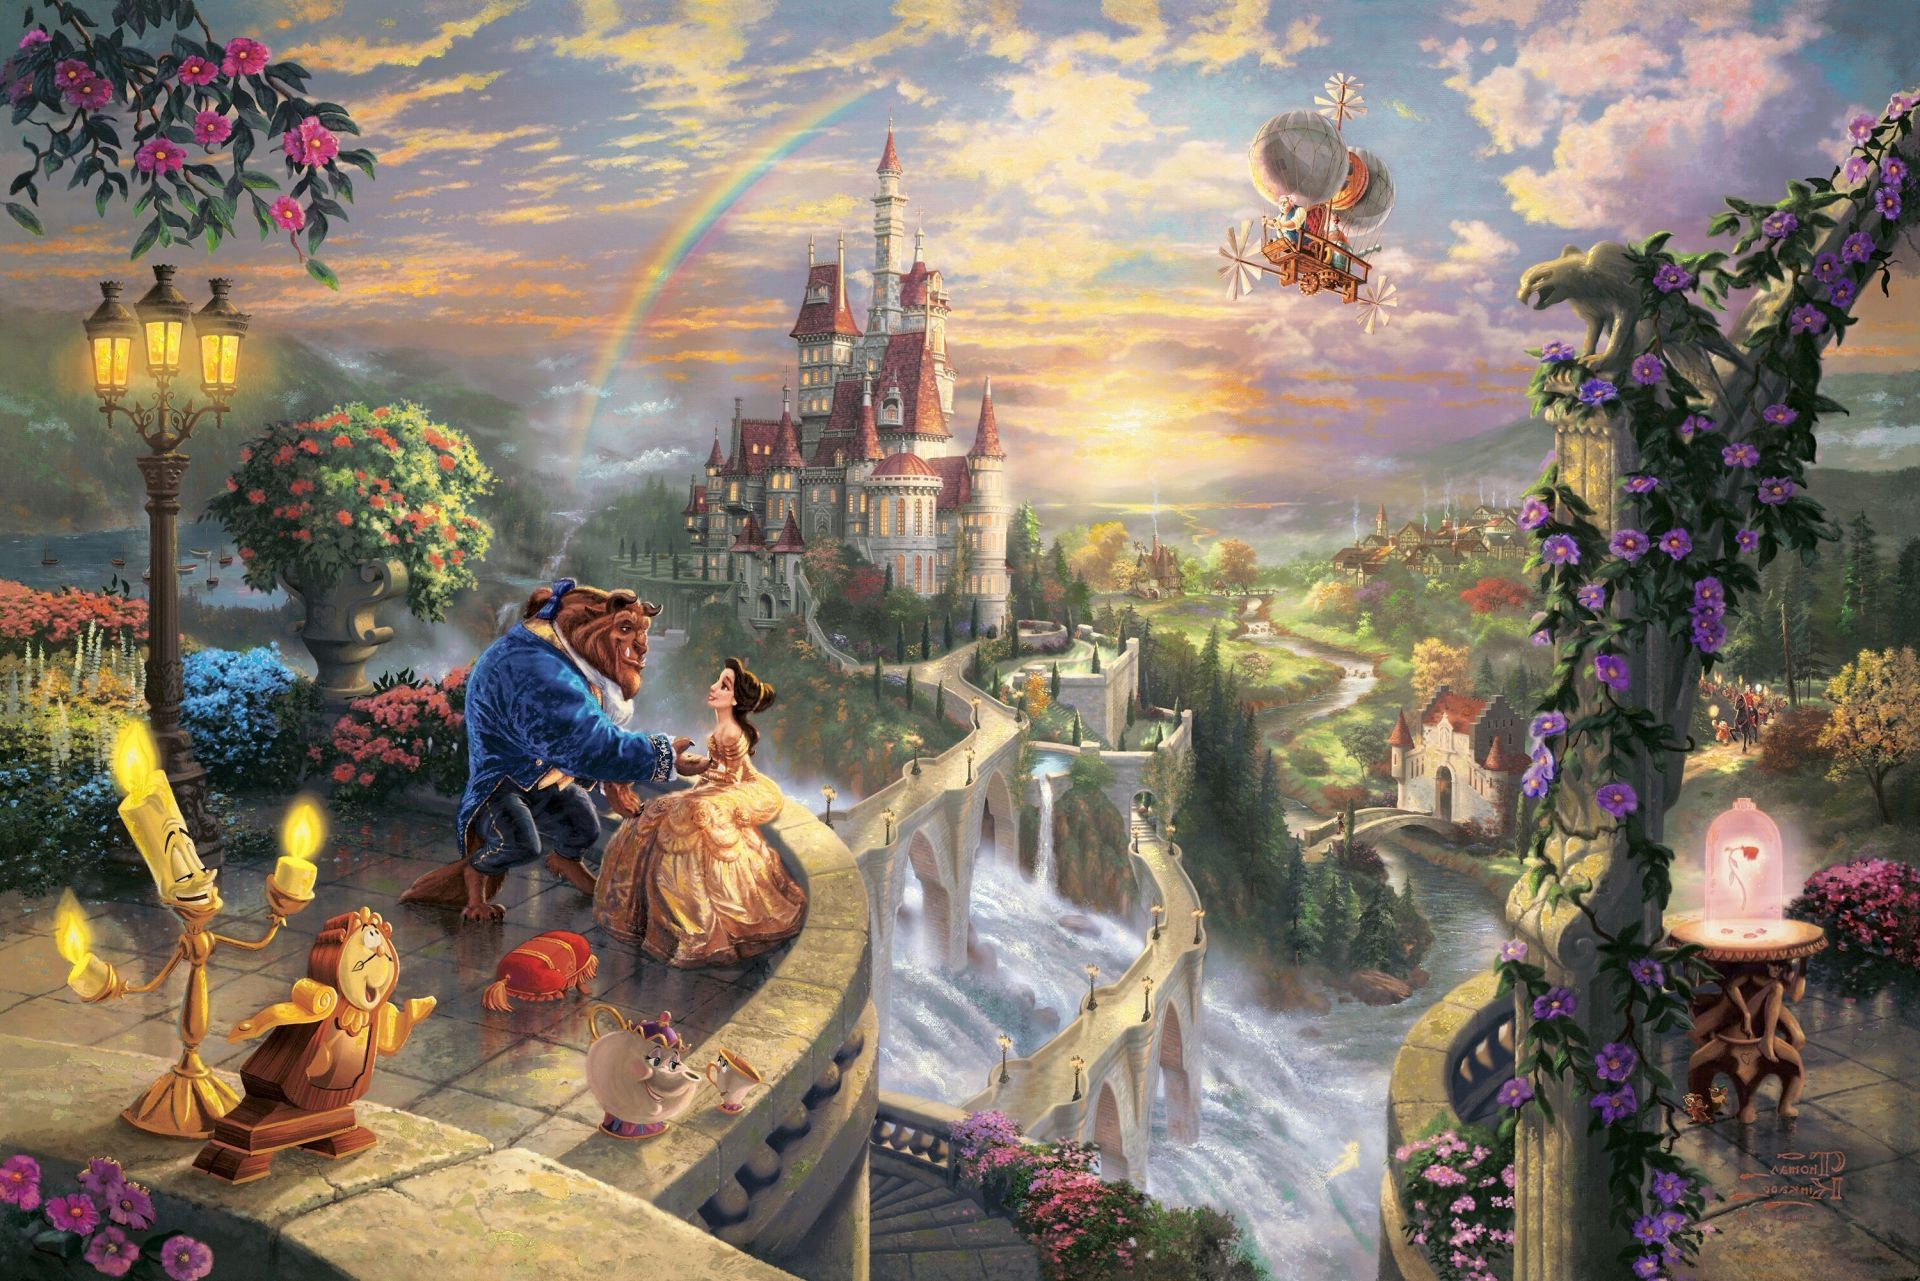 Thomas Kinkade Disney Wallpaper Download 1920x1281